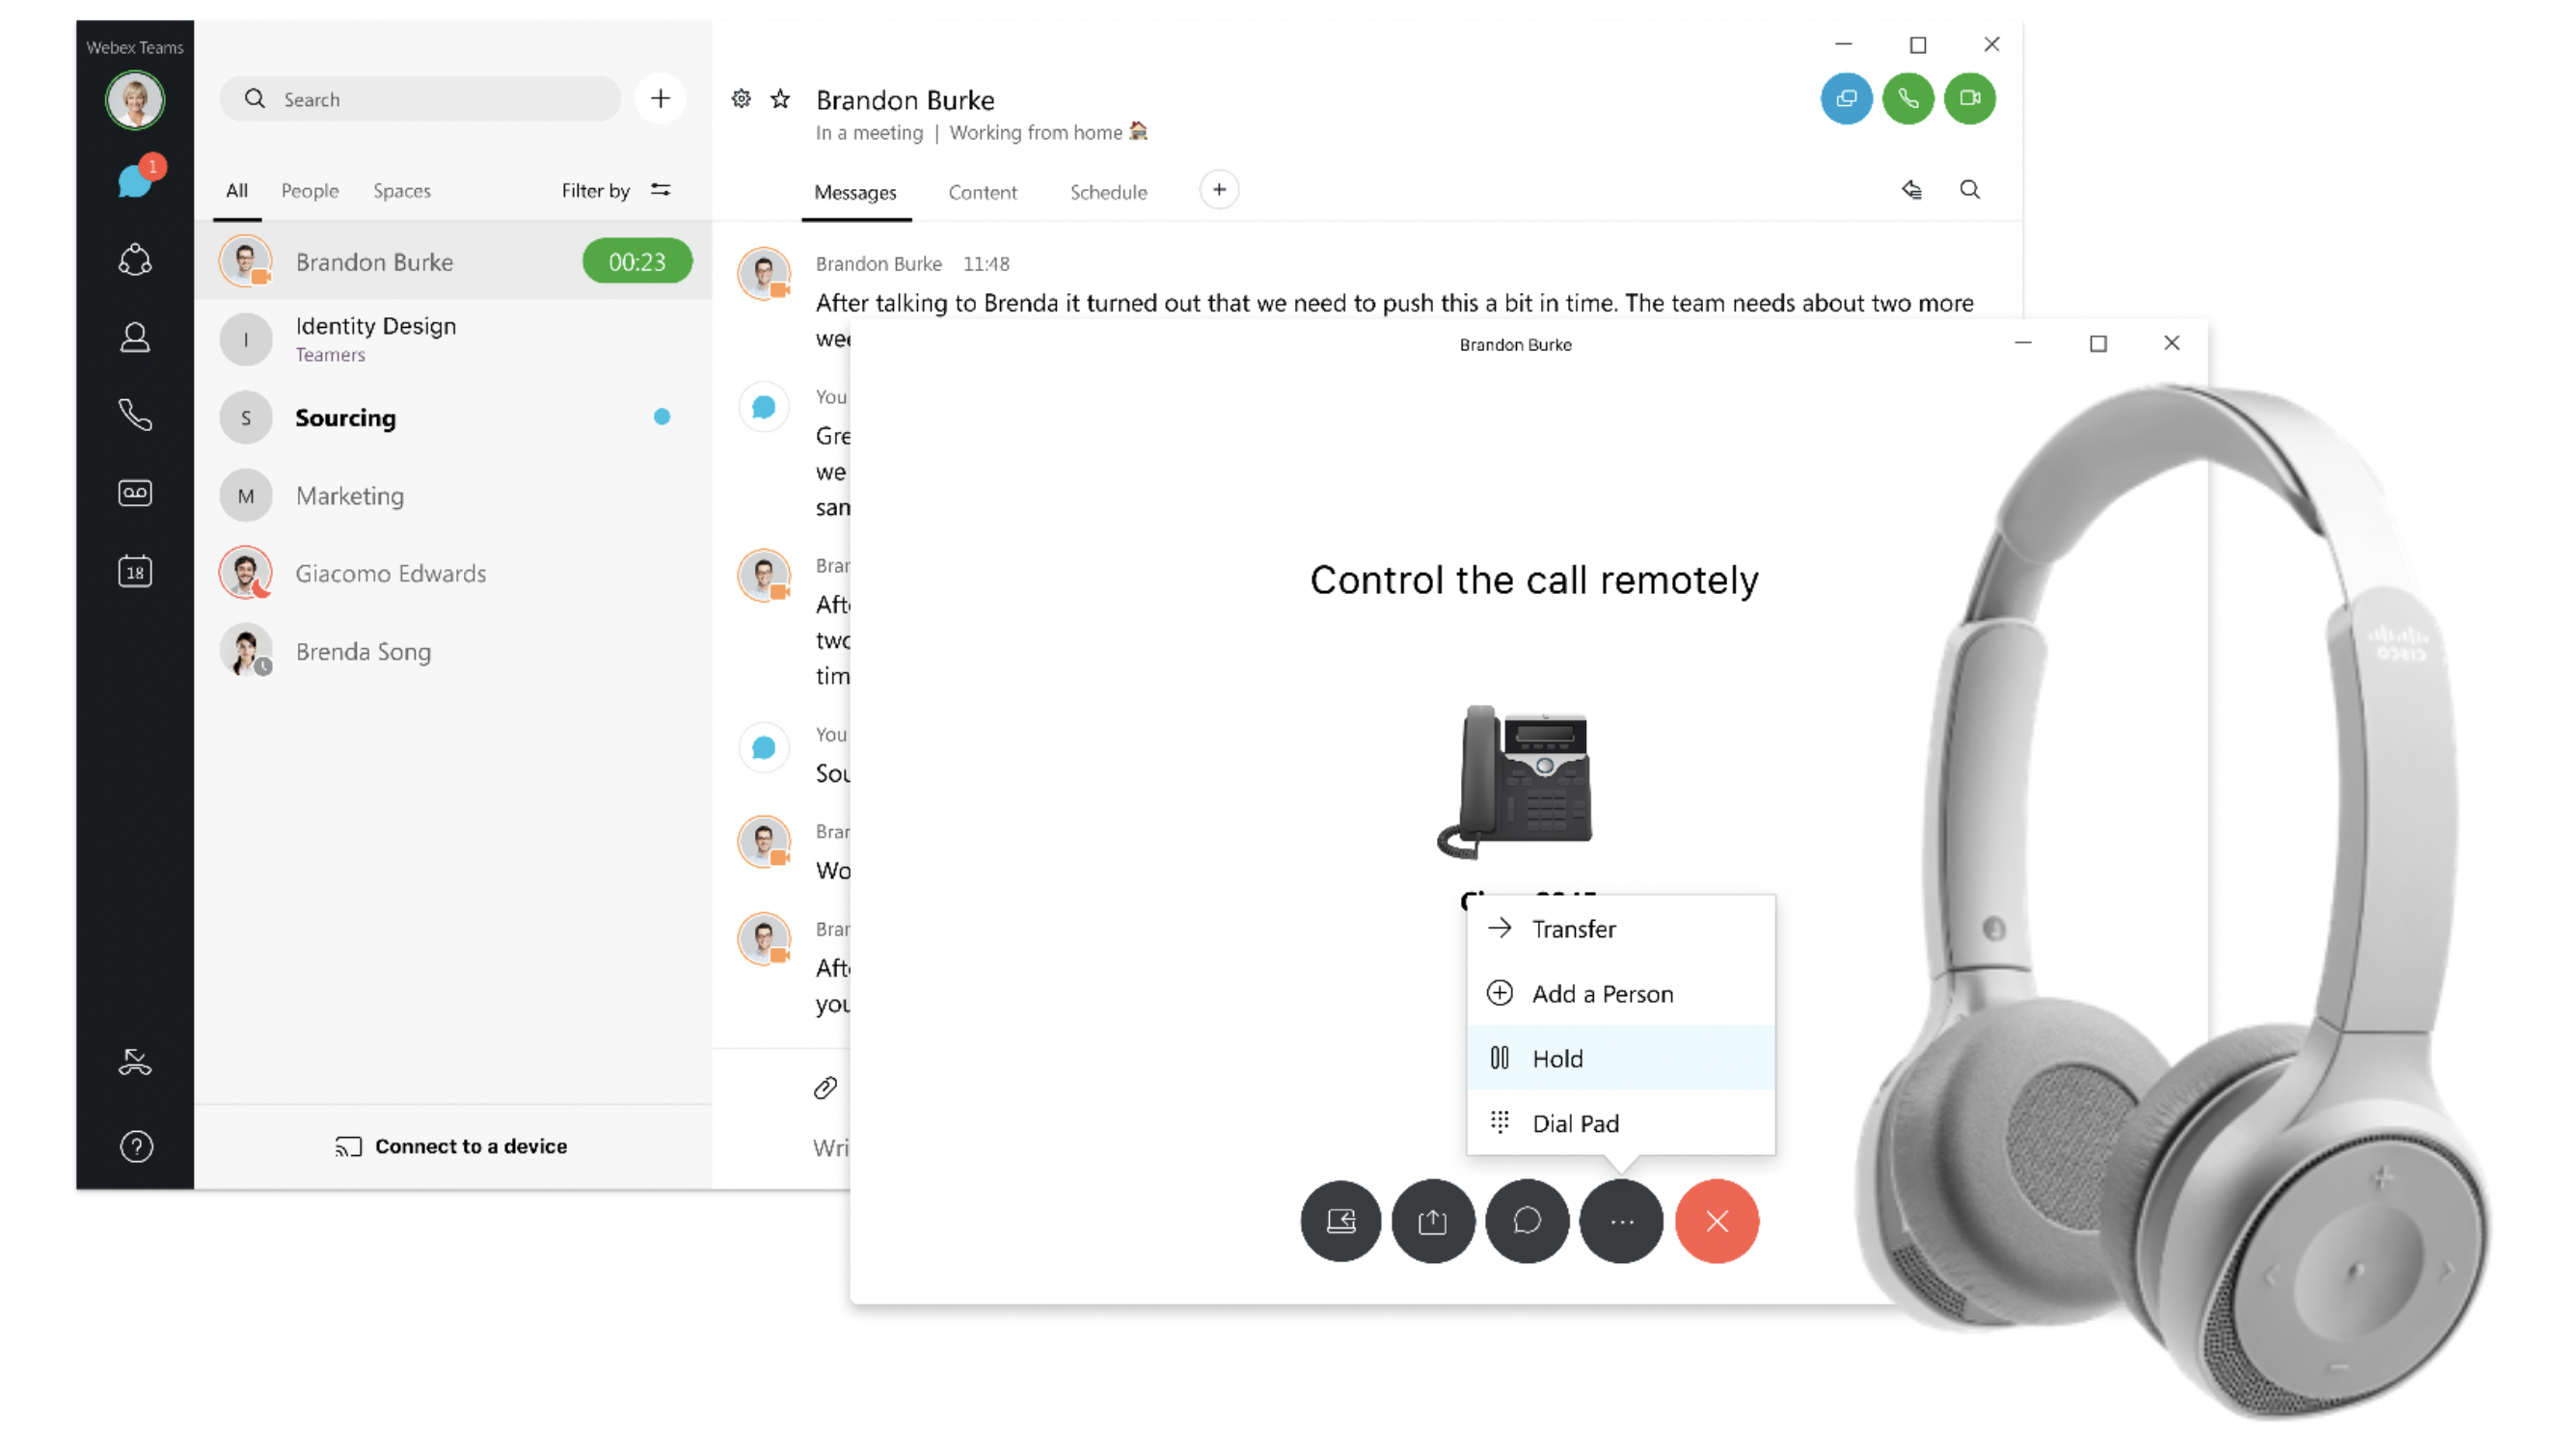 New desk phone controls in Webex and intelligent Cisco headsets enable hands free business calling